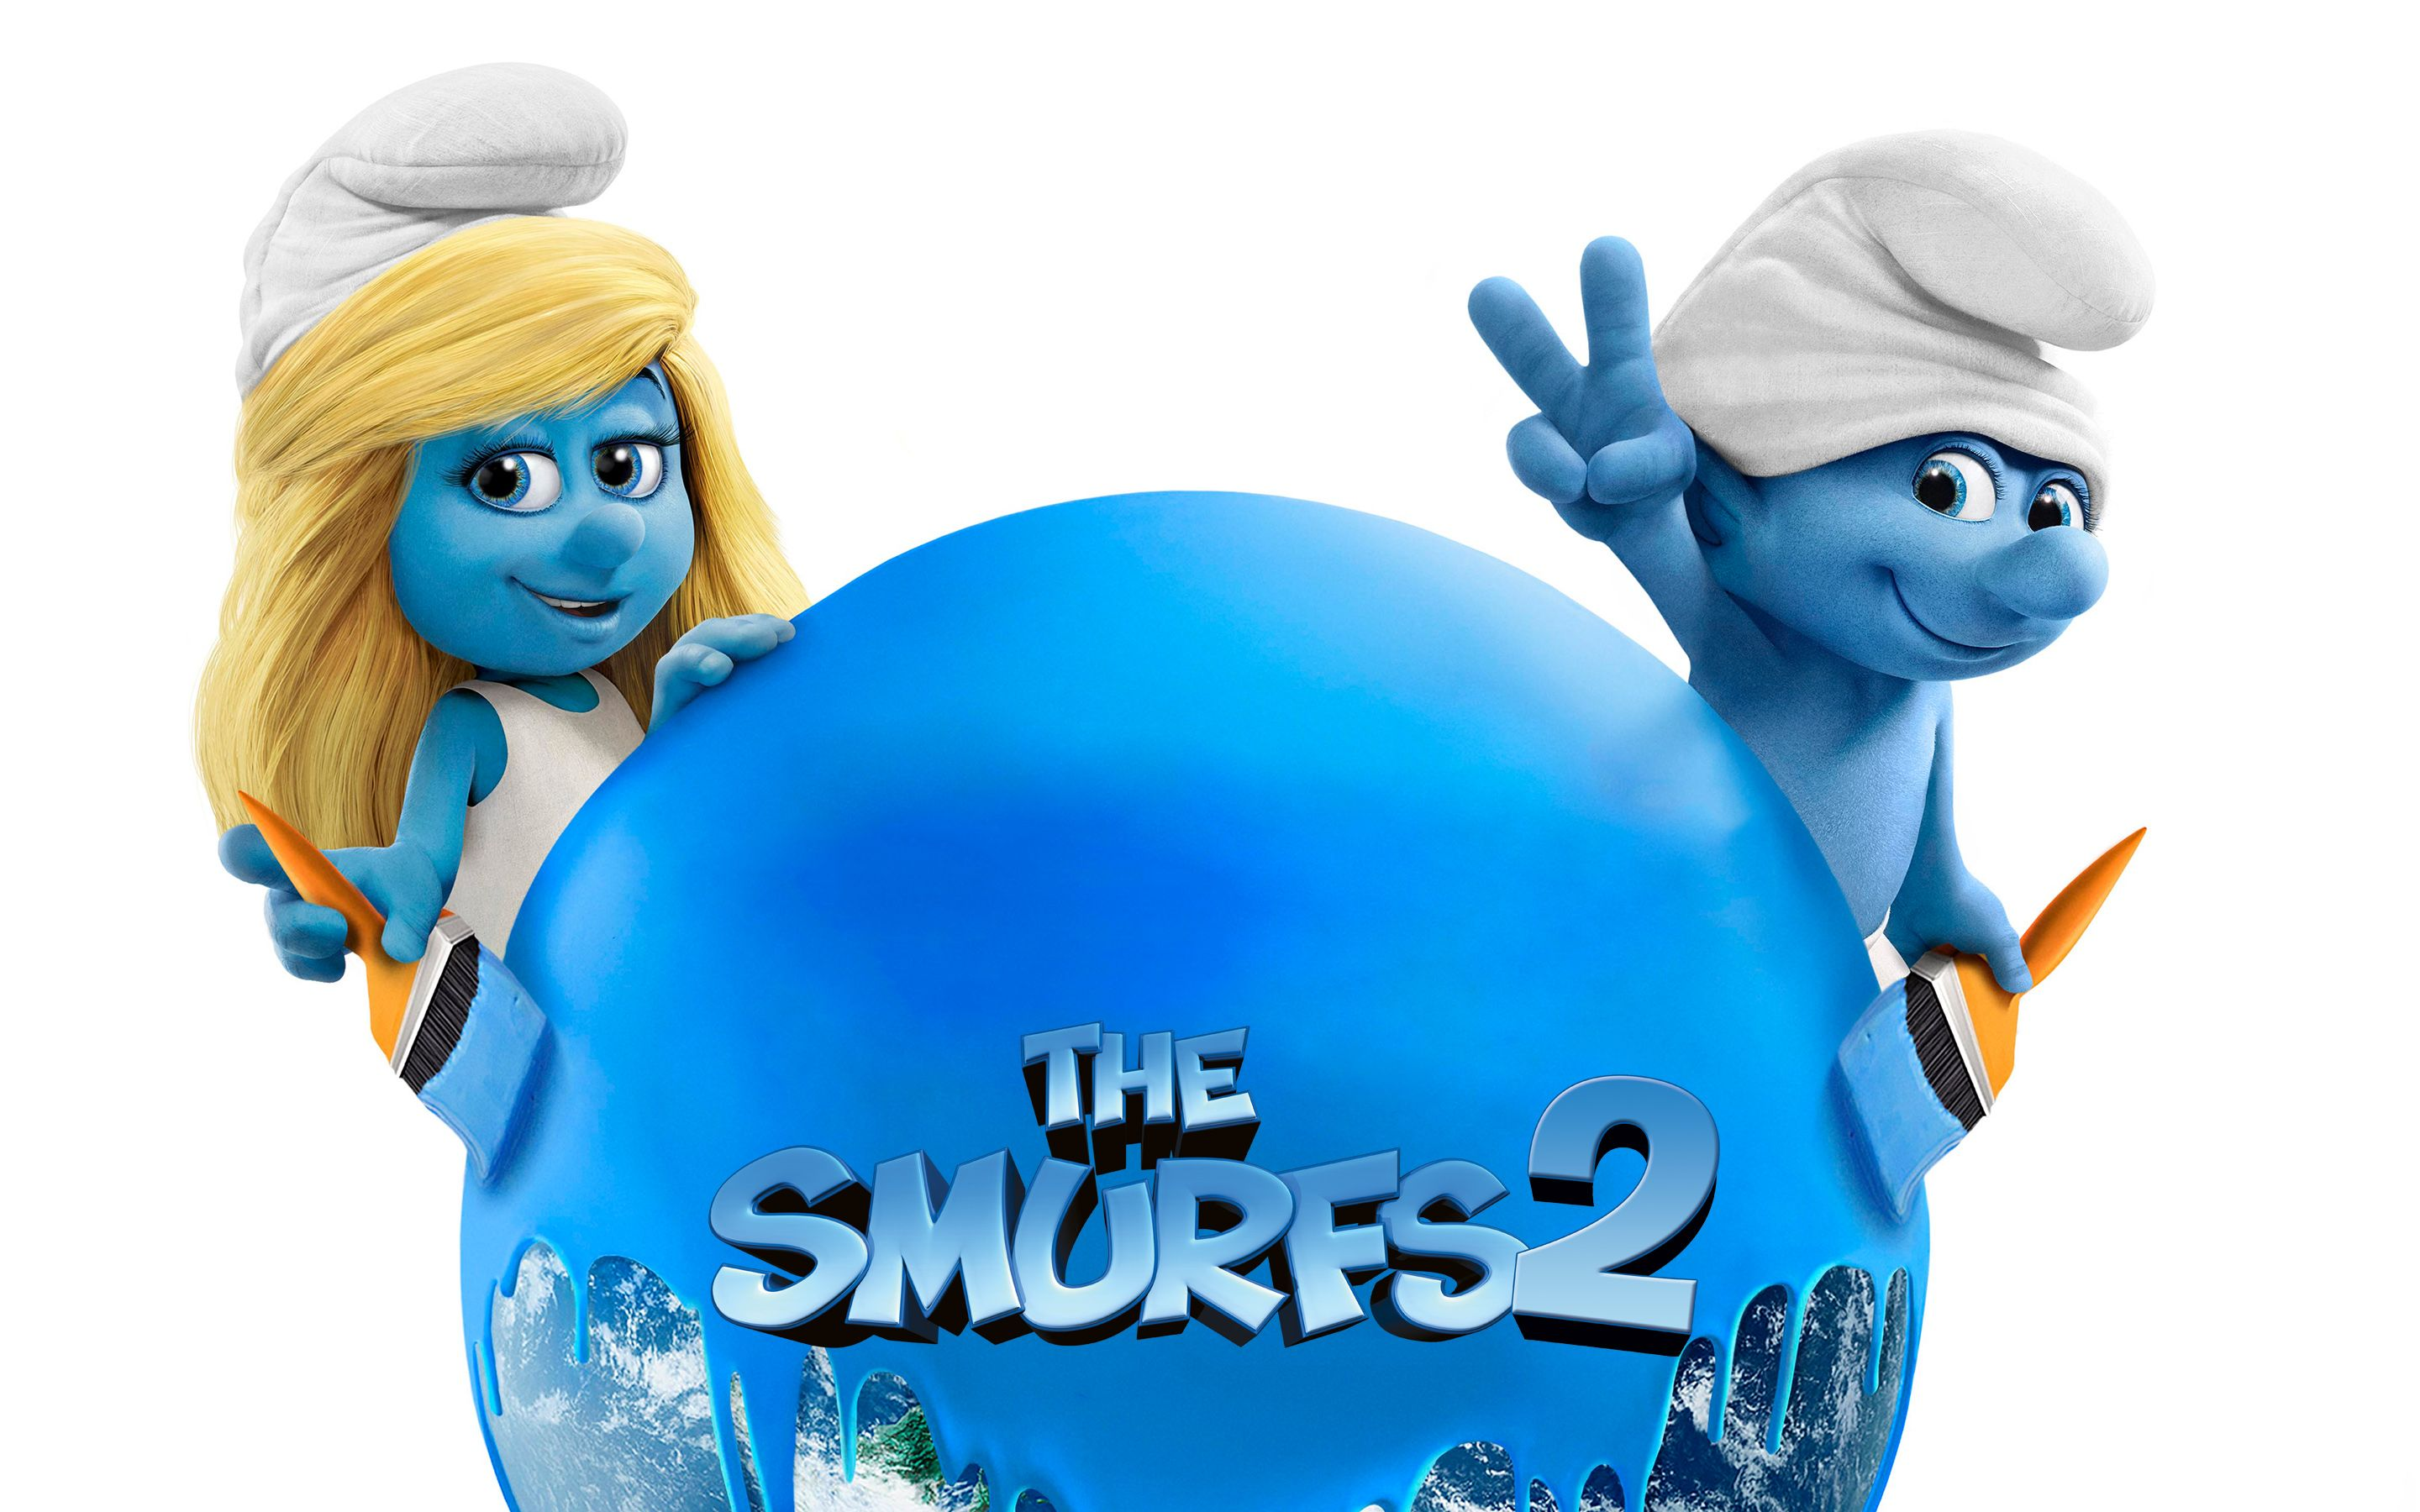 the smurfs 2 movie hd wallpapers http://www.nicewallpapers.in